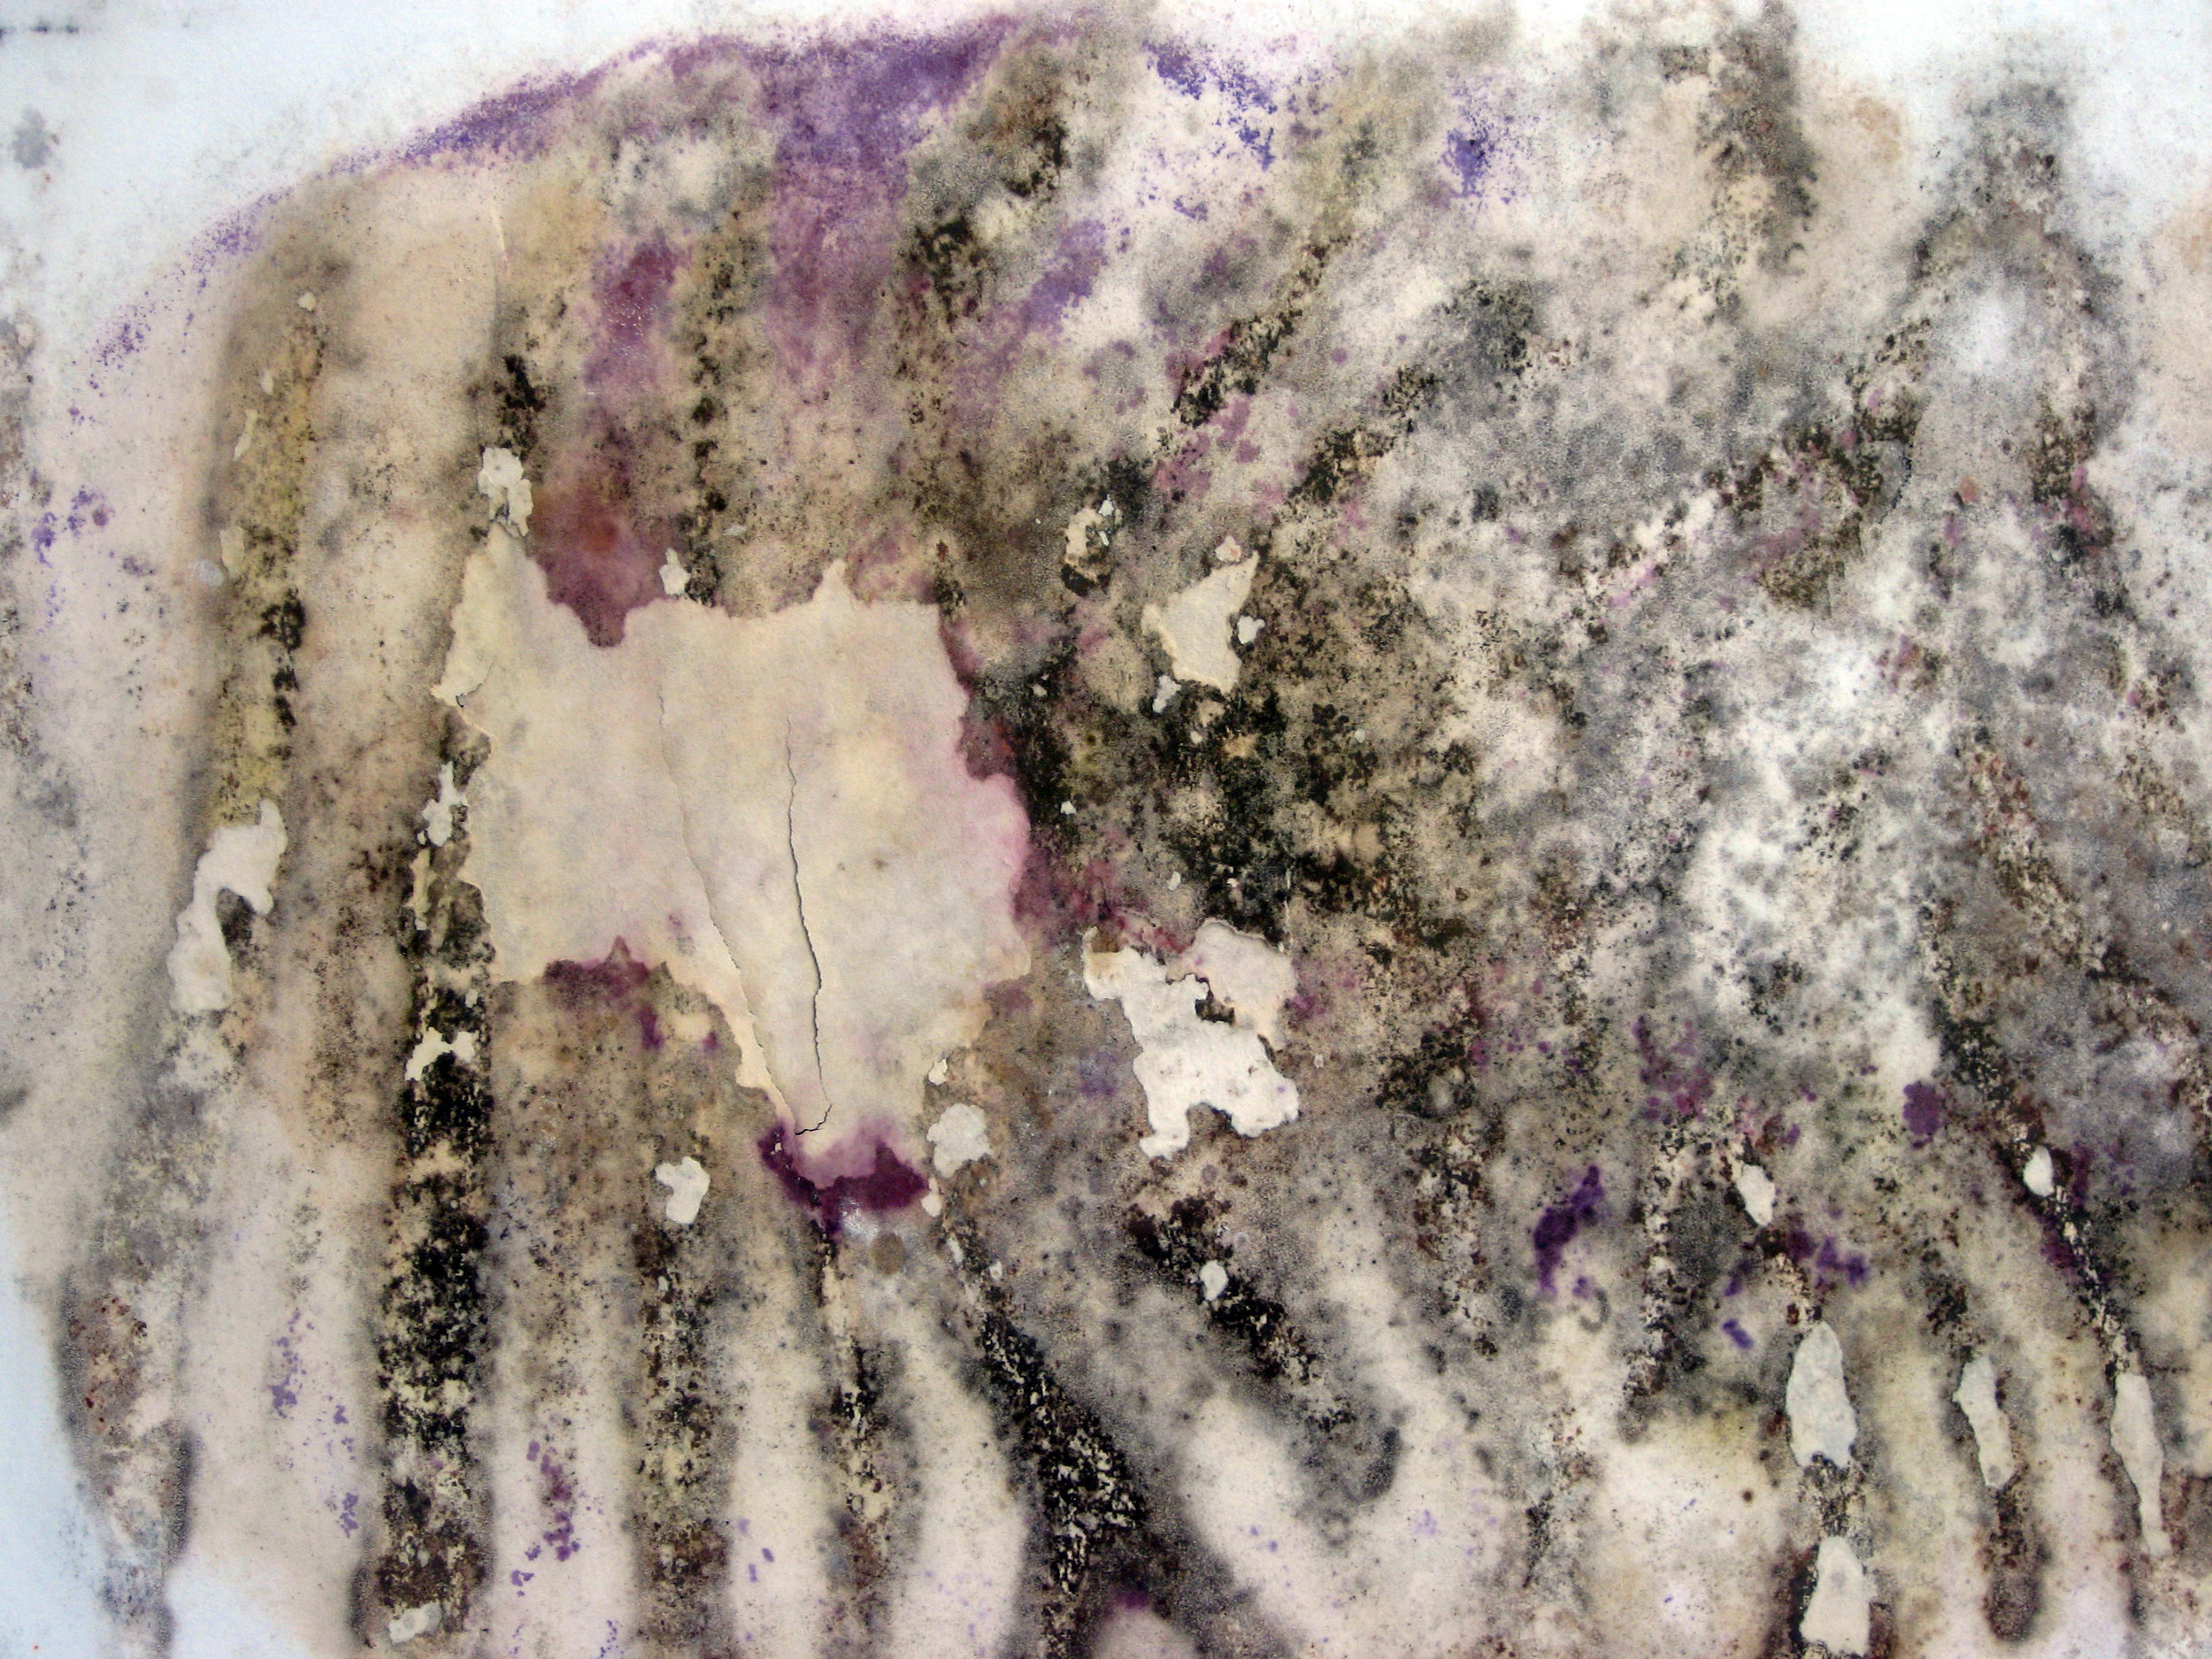 Mold and Paper - Learn about mold on paper, how to prevent it, and what to do if you have a mold outbreak on your collection.